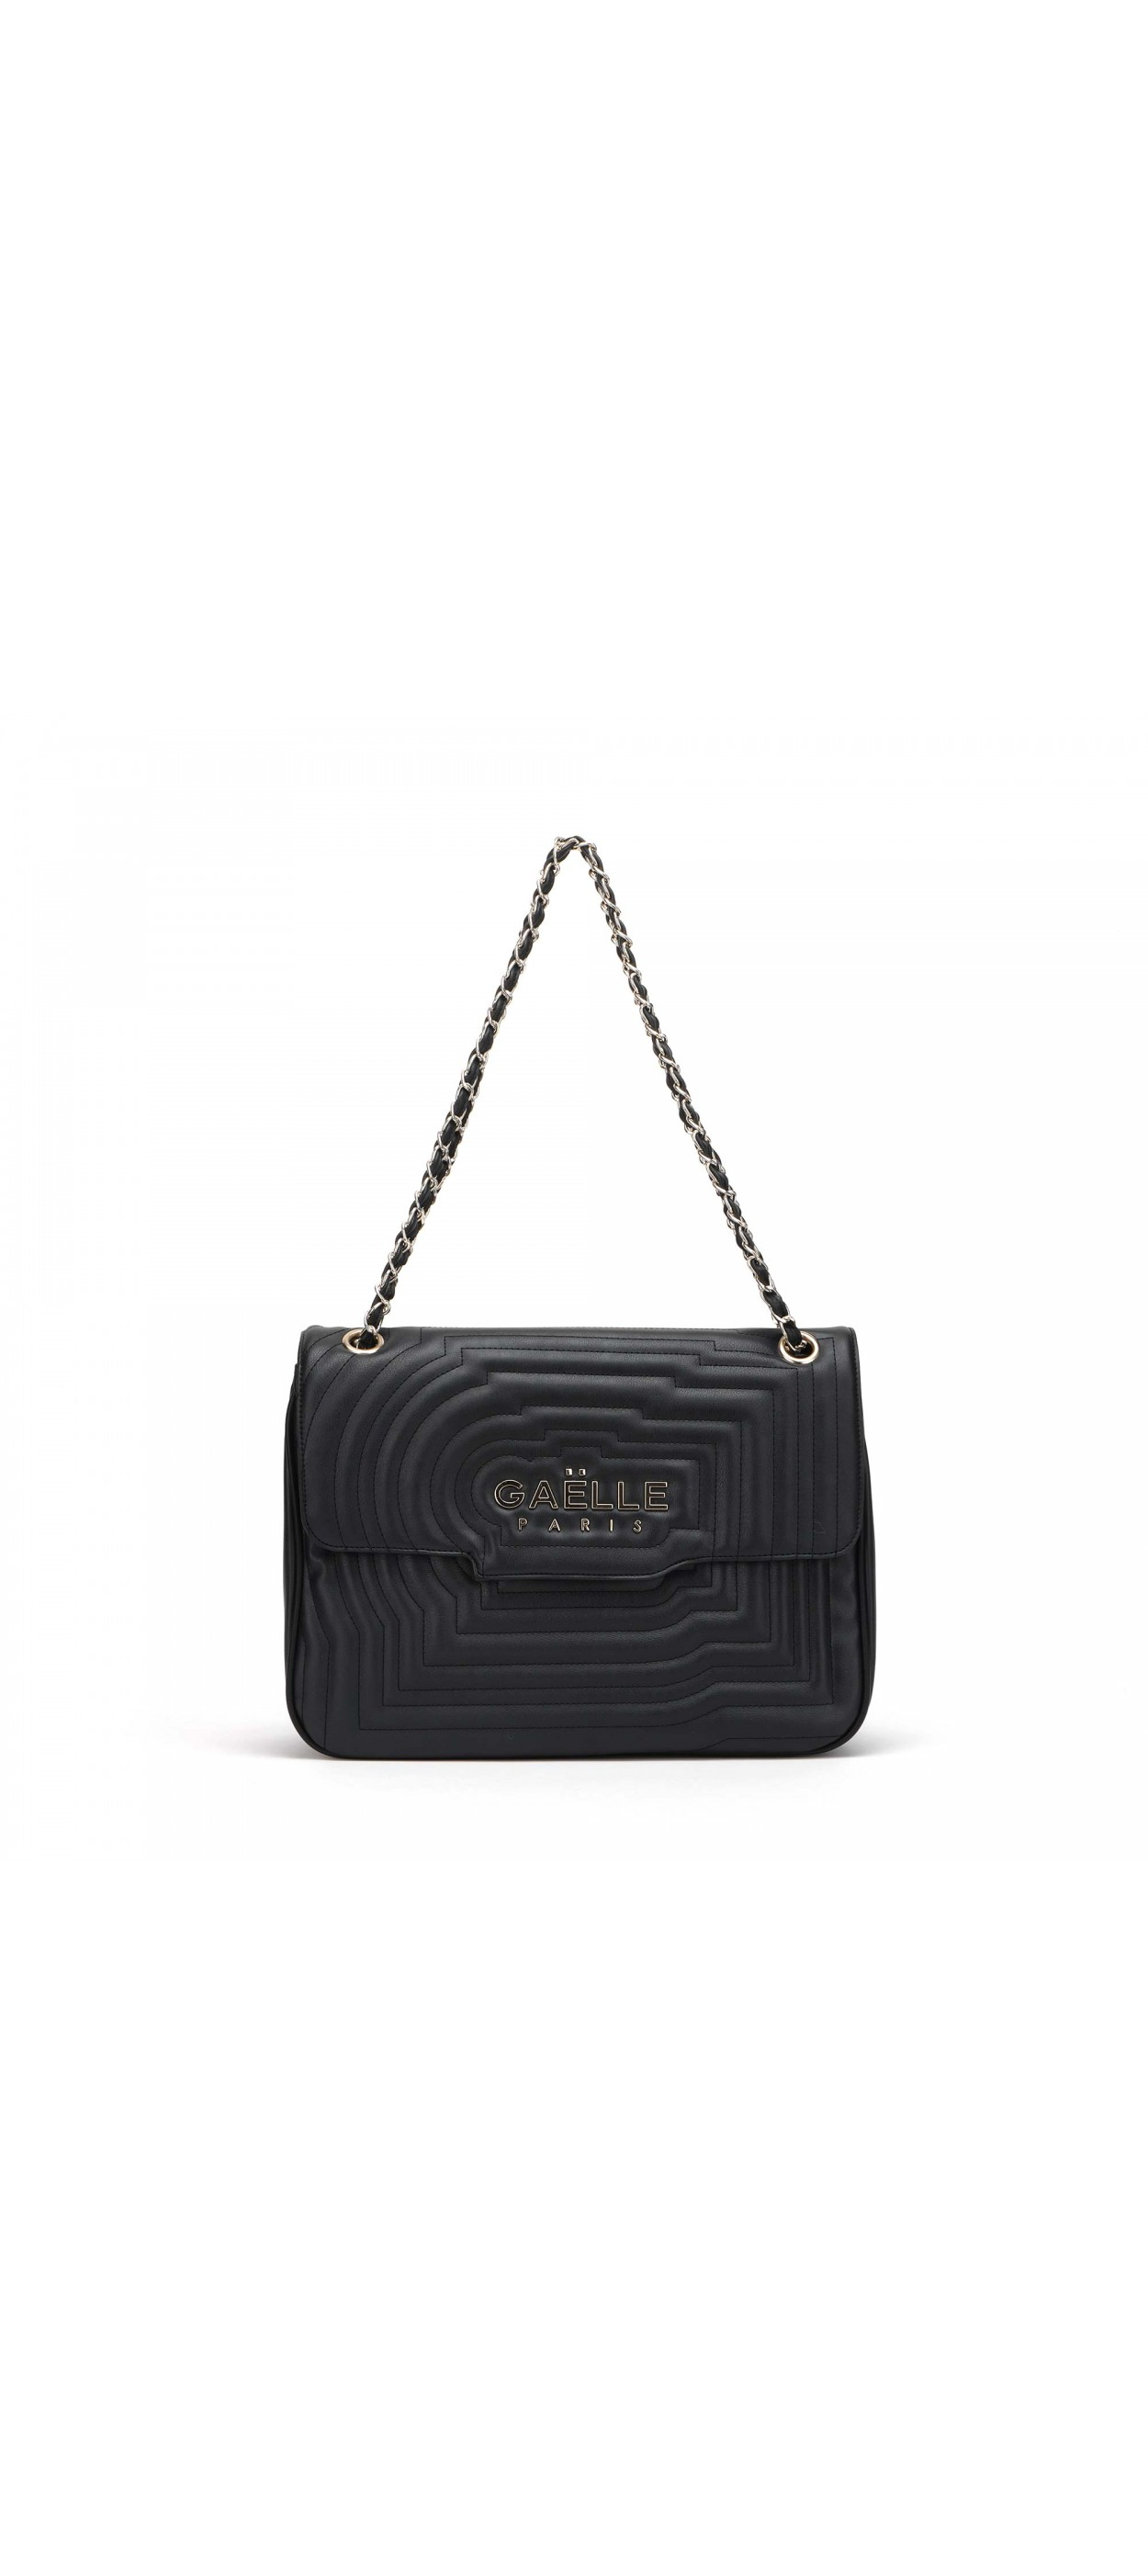 MAXI SHOULDER BAG - GBDA2043 - GAELLE PARIS